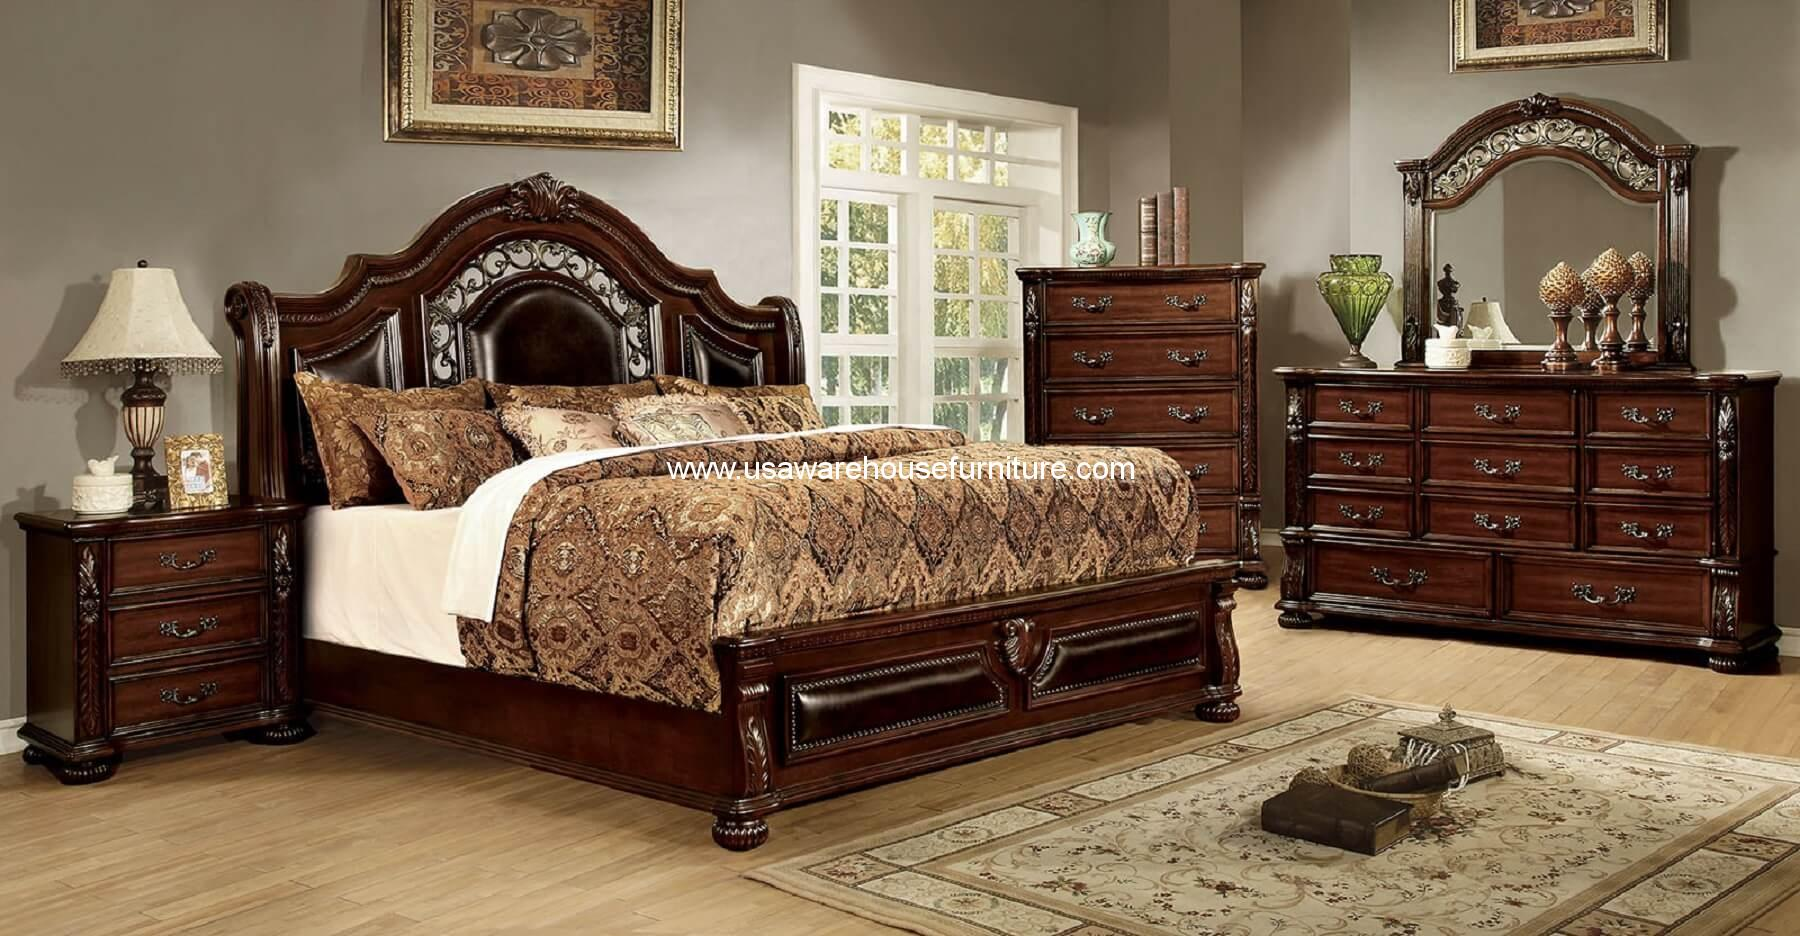 4 piece flansreau bedroom set brown cherry finish usa for Bedroom furniture warehouse